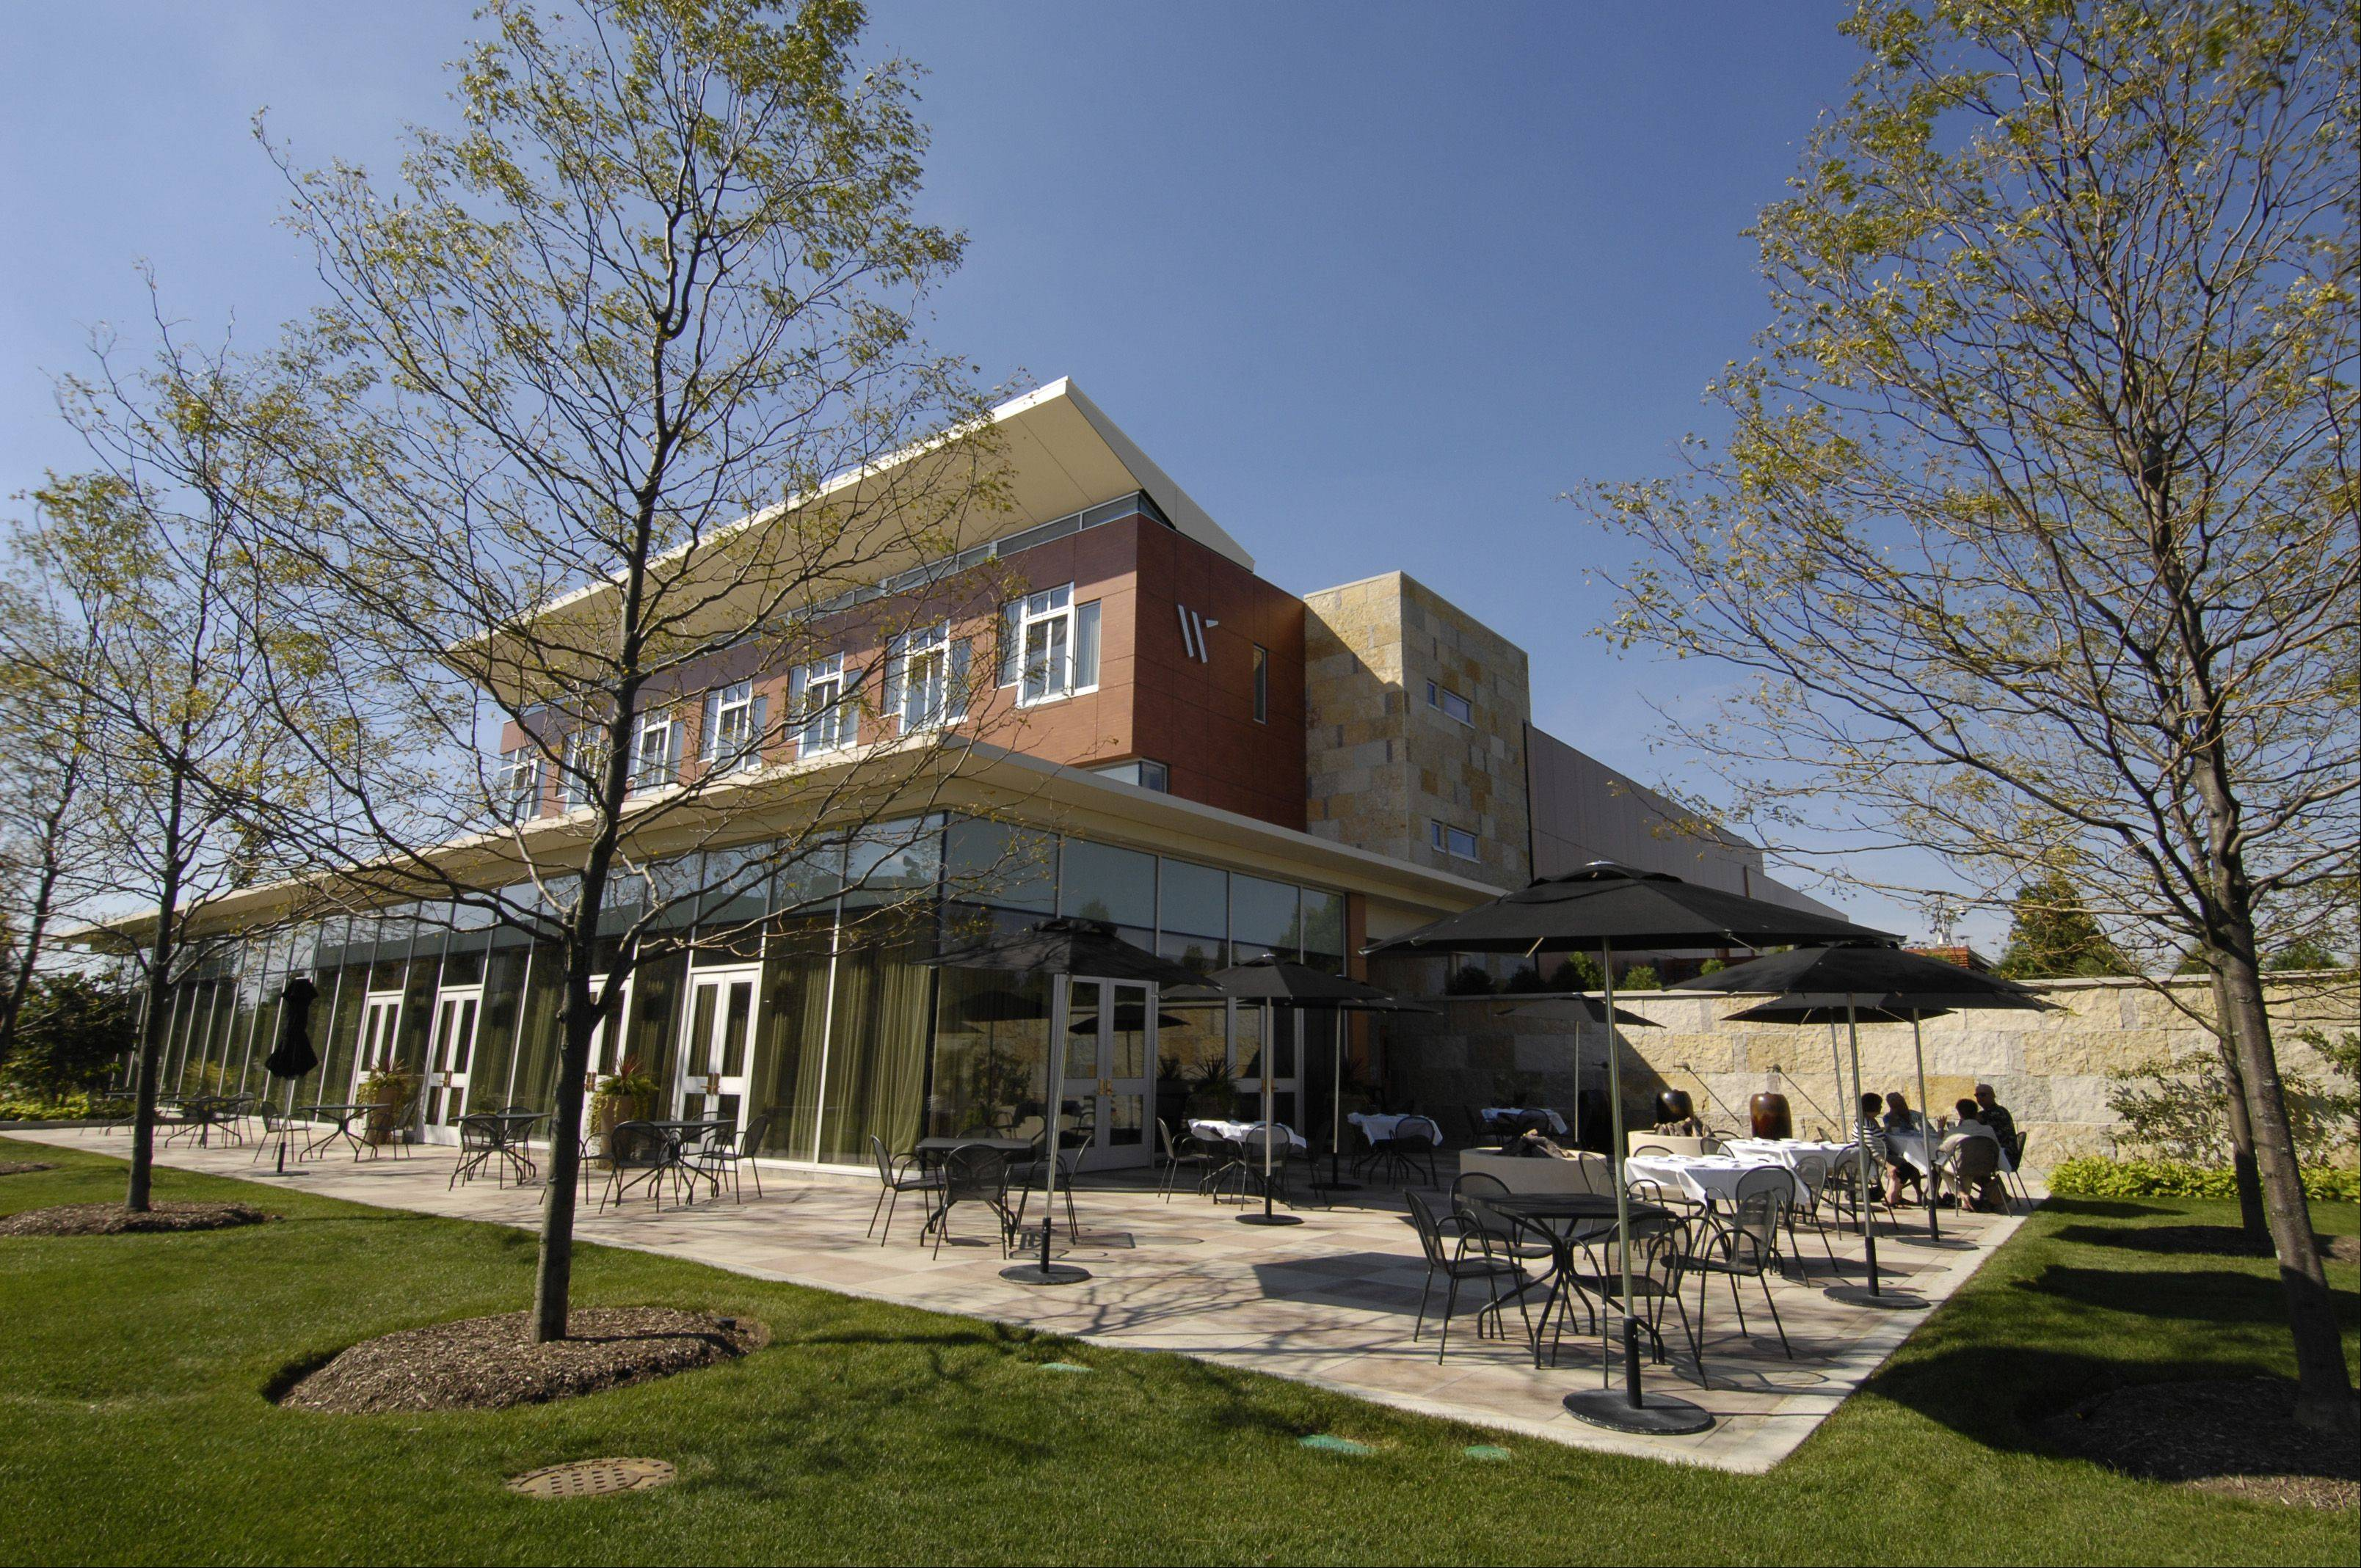 The patio at Waterleaf at the College of DuPage's culinary center is a beautiful spot for al fresco dining.